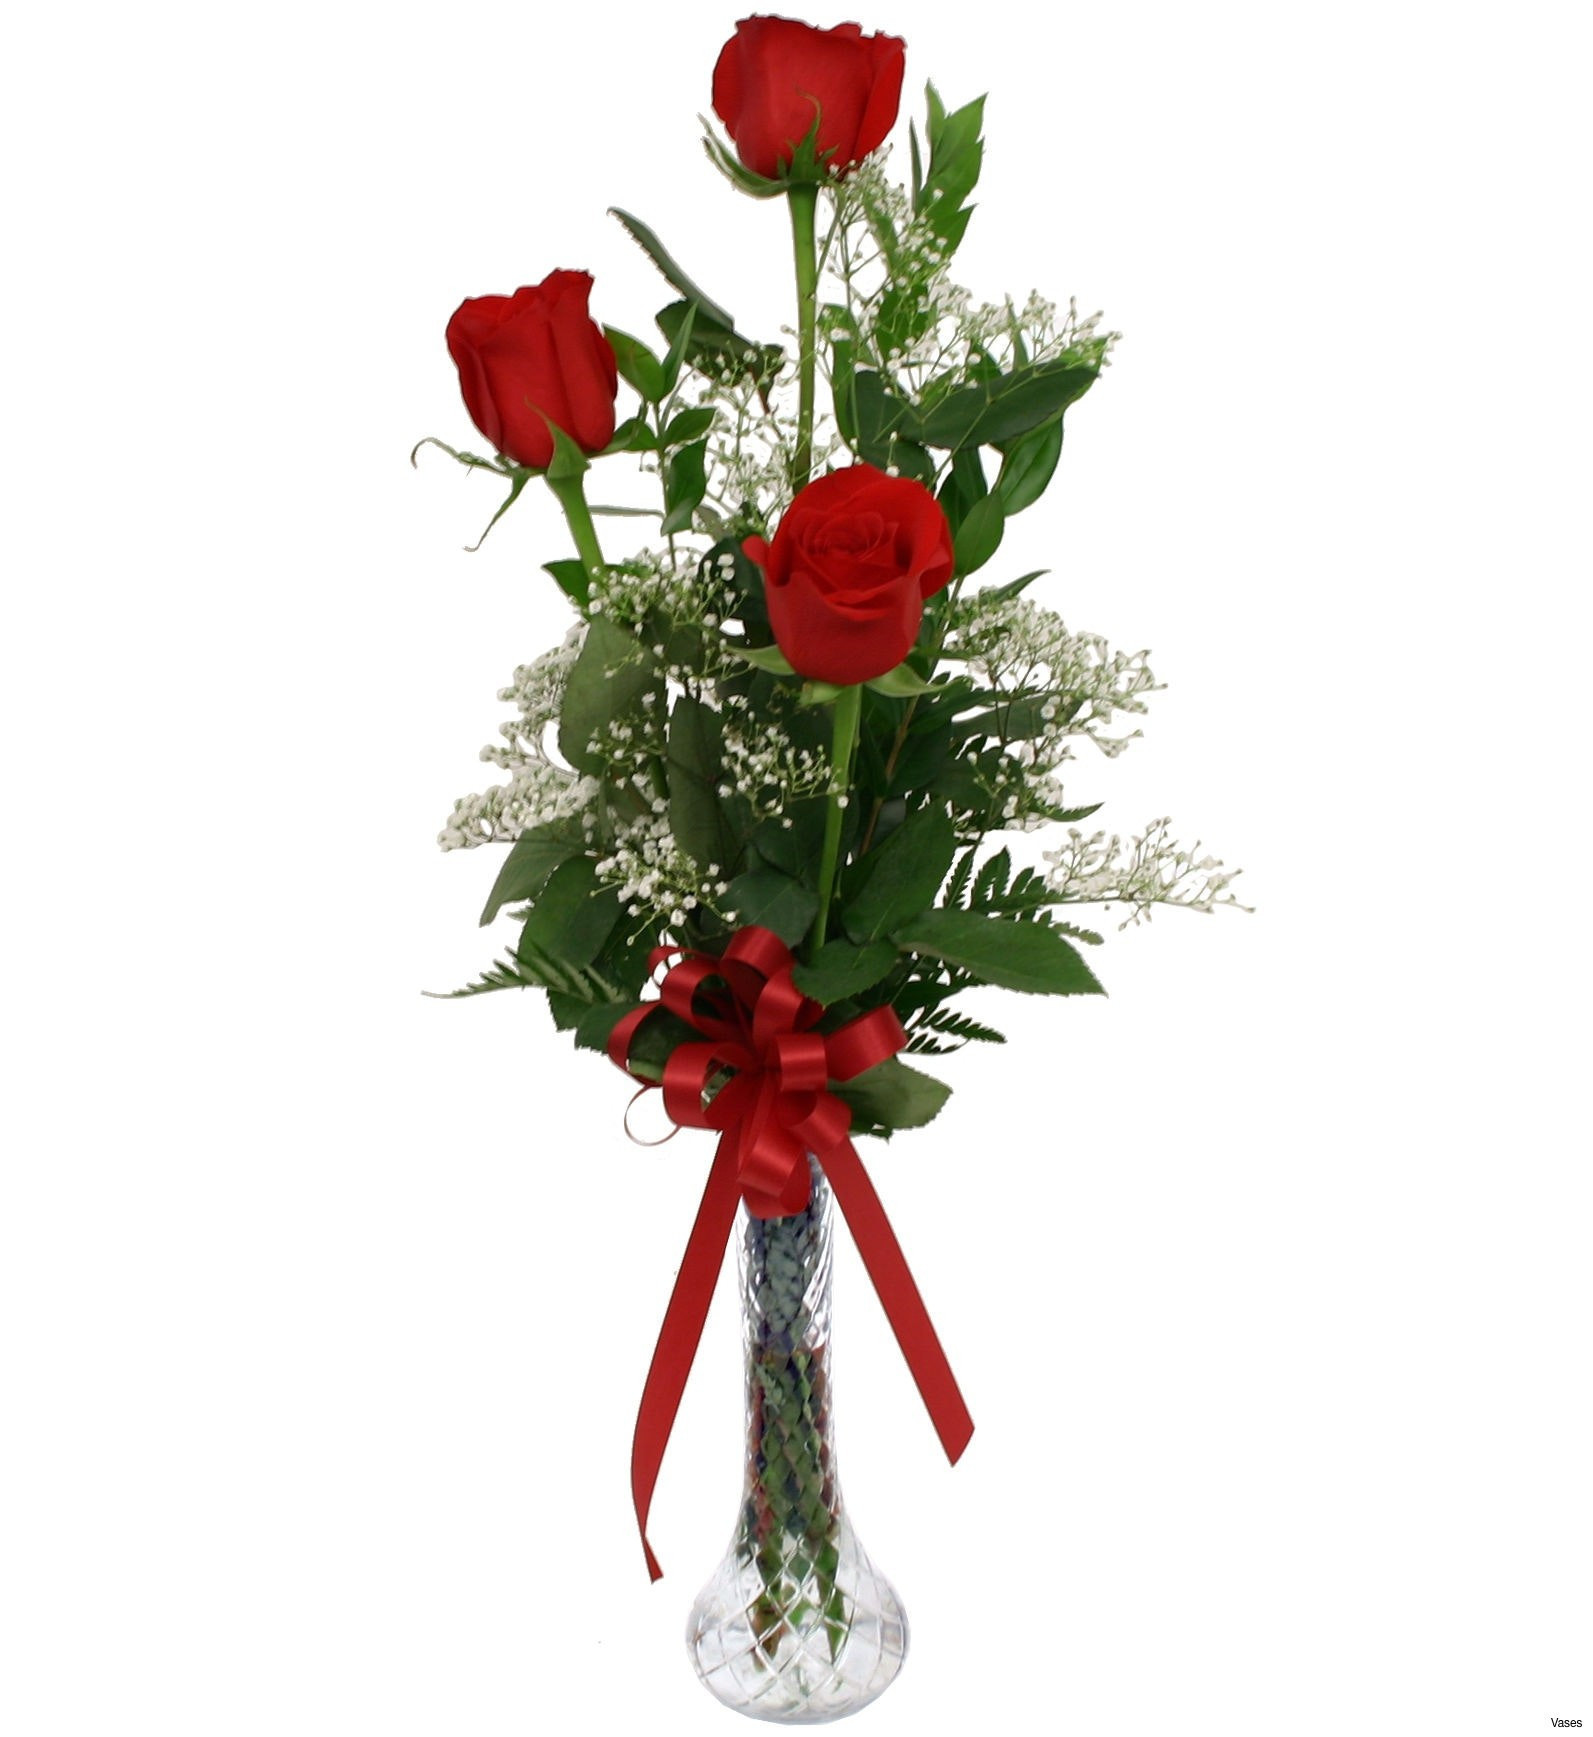 red flowers in vase of rose bud images awesome luxury lsa flower colour bud vase red h regarding related post